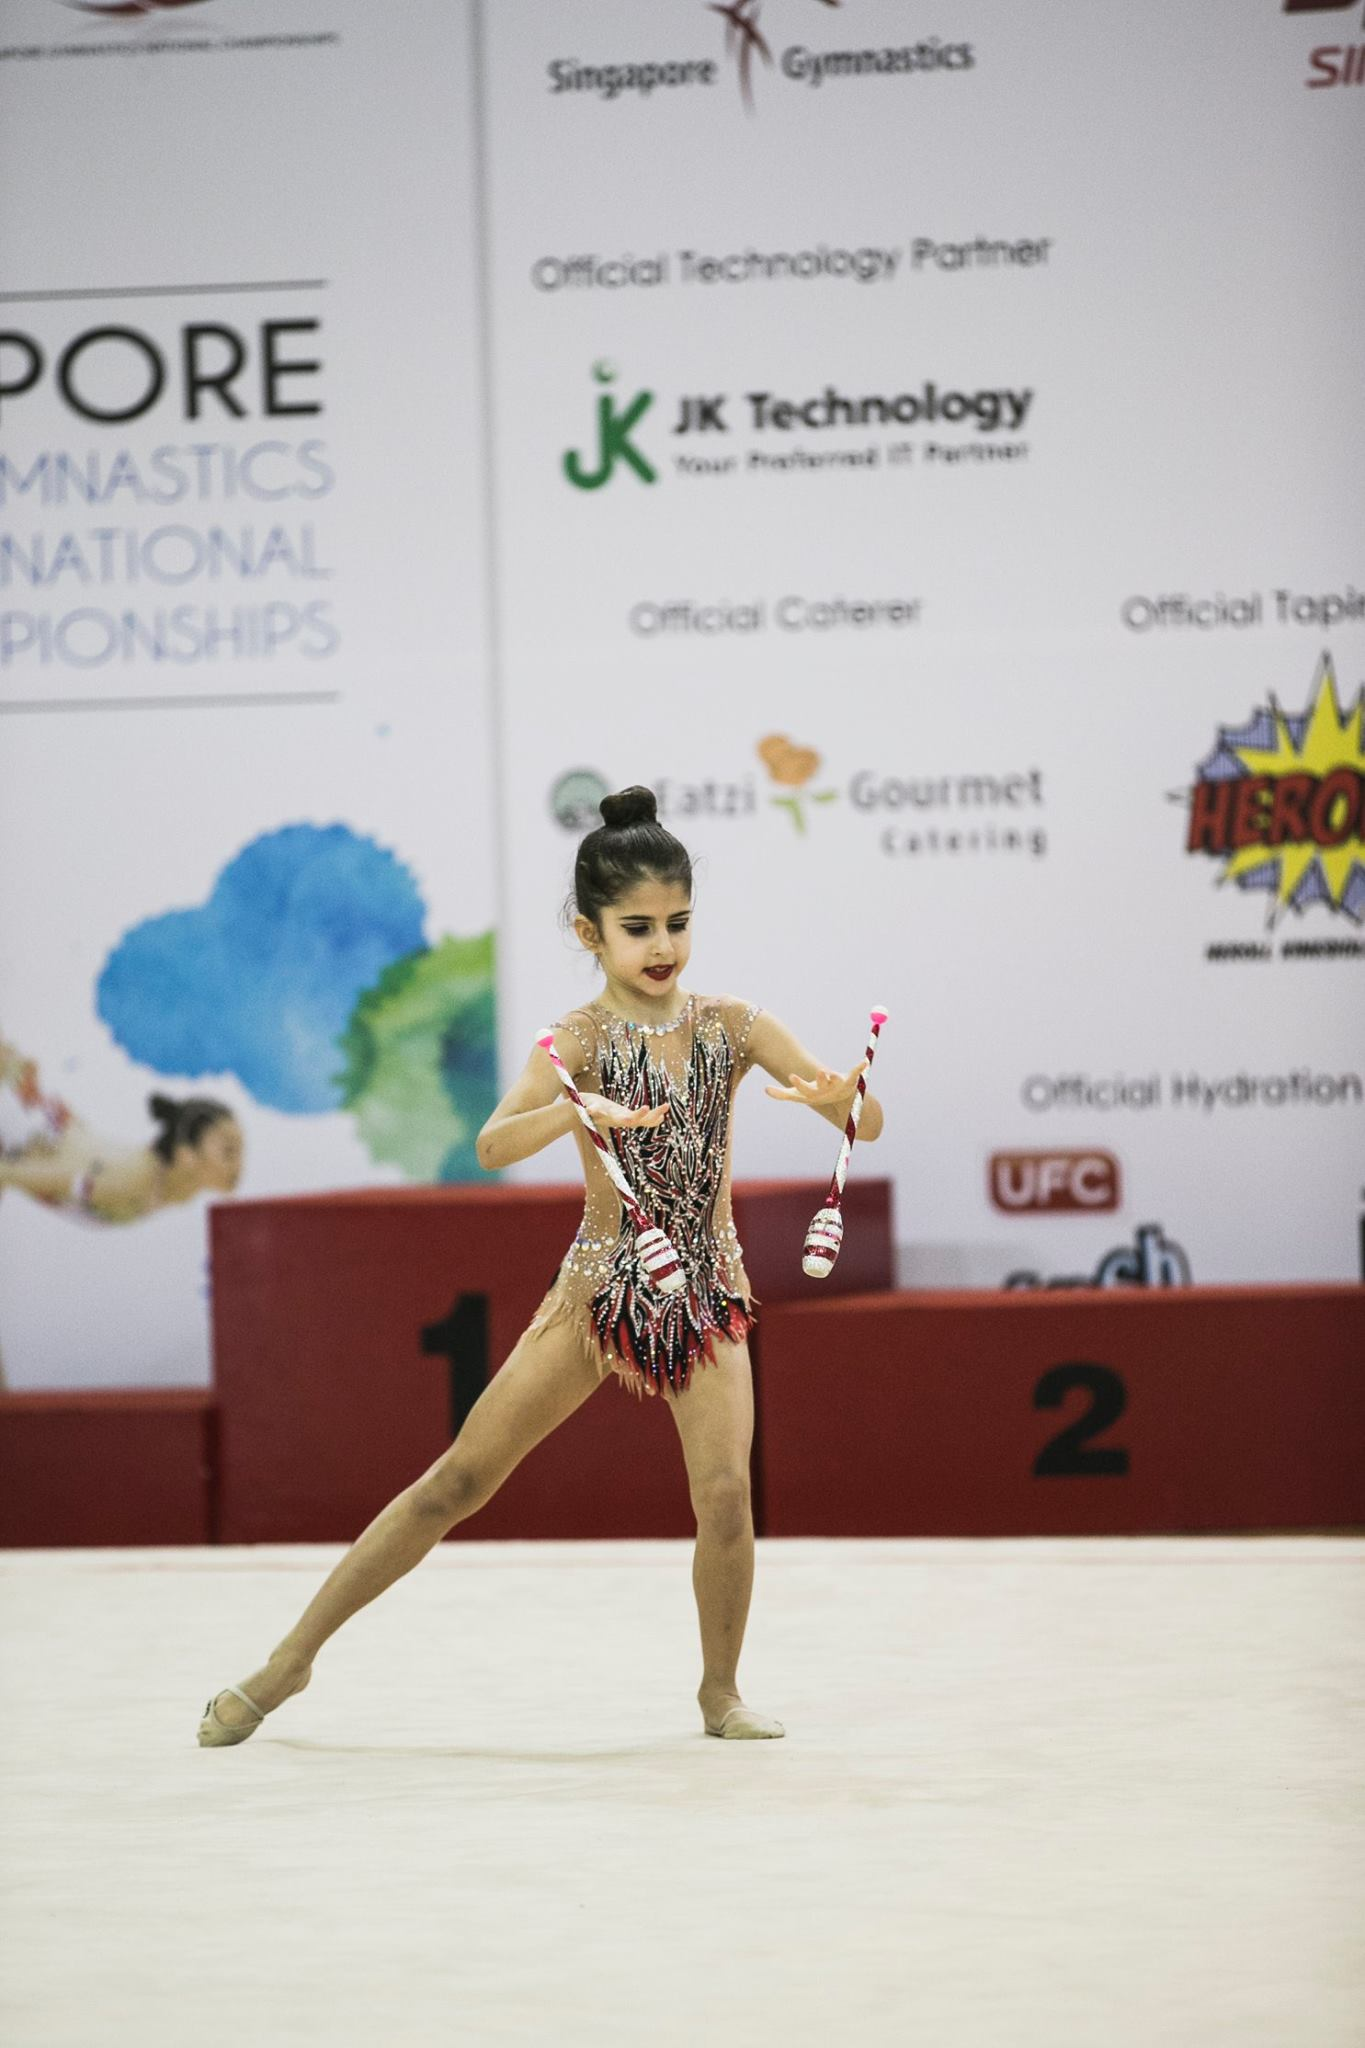 9th Singapore Gymnastics National Championships 2017 63